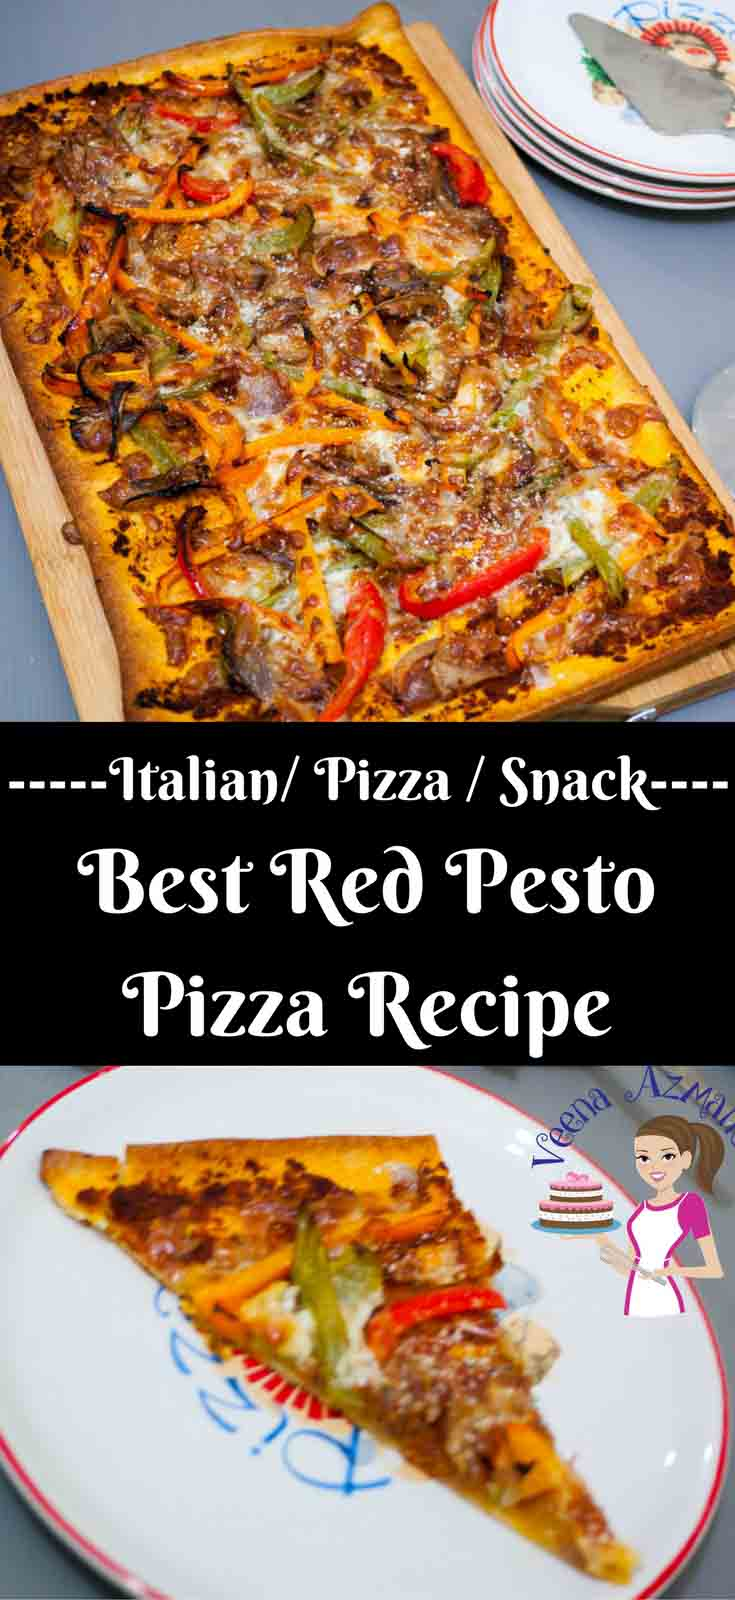 This has got to be the best red pesto pizza with peppers because it's quick, delicious and best of all super easy with almost every thing semi homemade making weekday day or kids snack time a breeze.